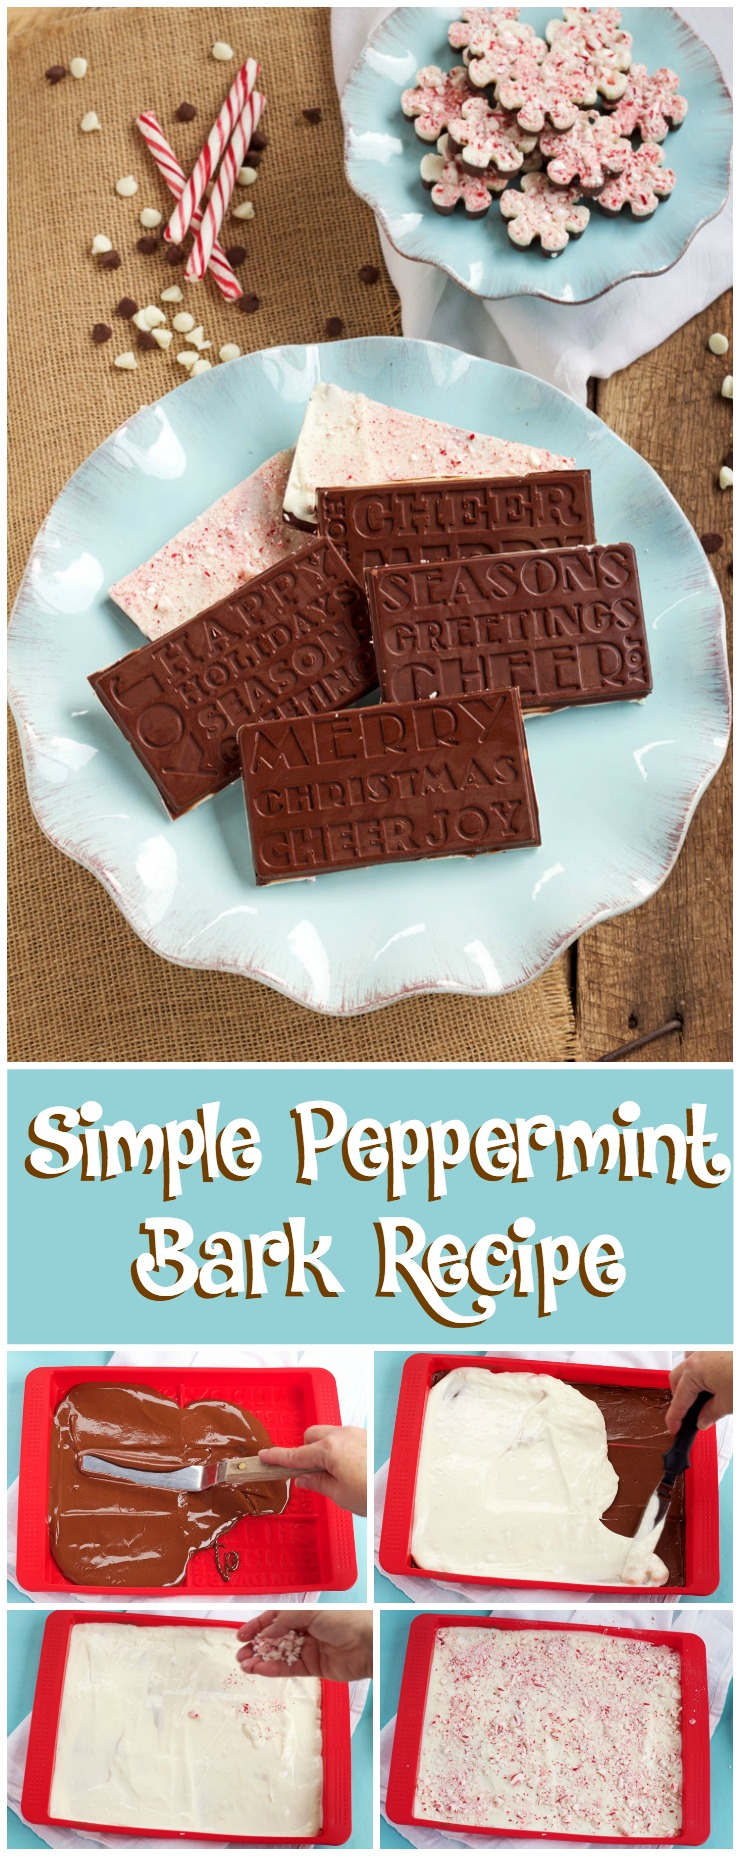 Simple Peppermint Bark Recipe for Christmas | The Bearfoot Baker